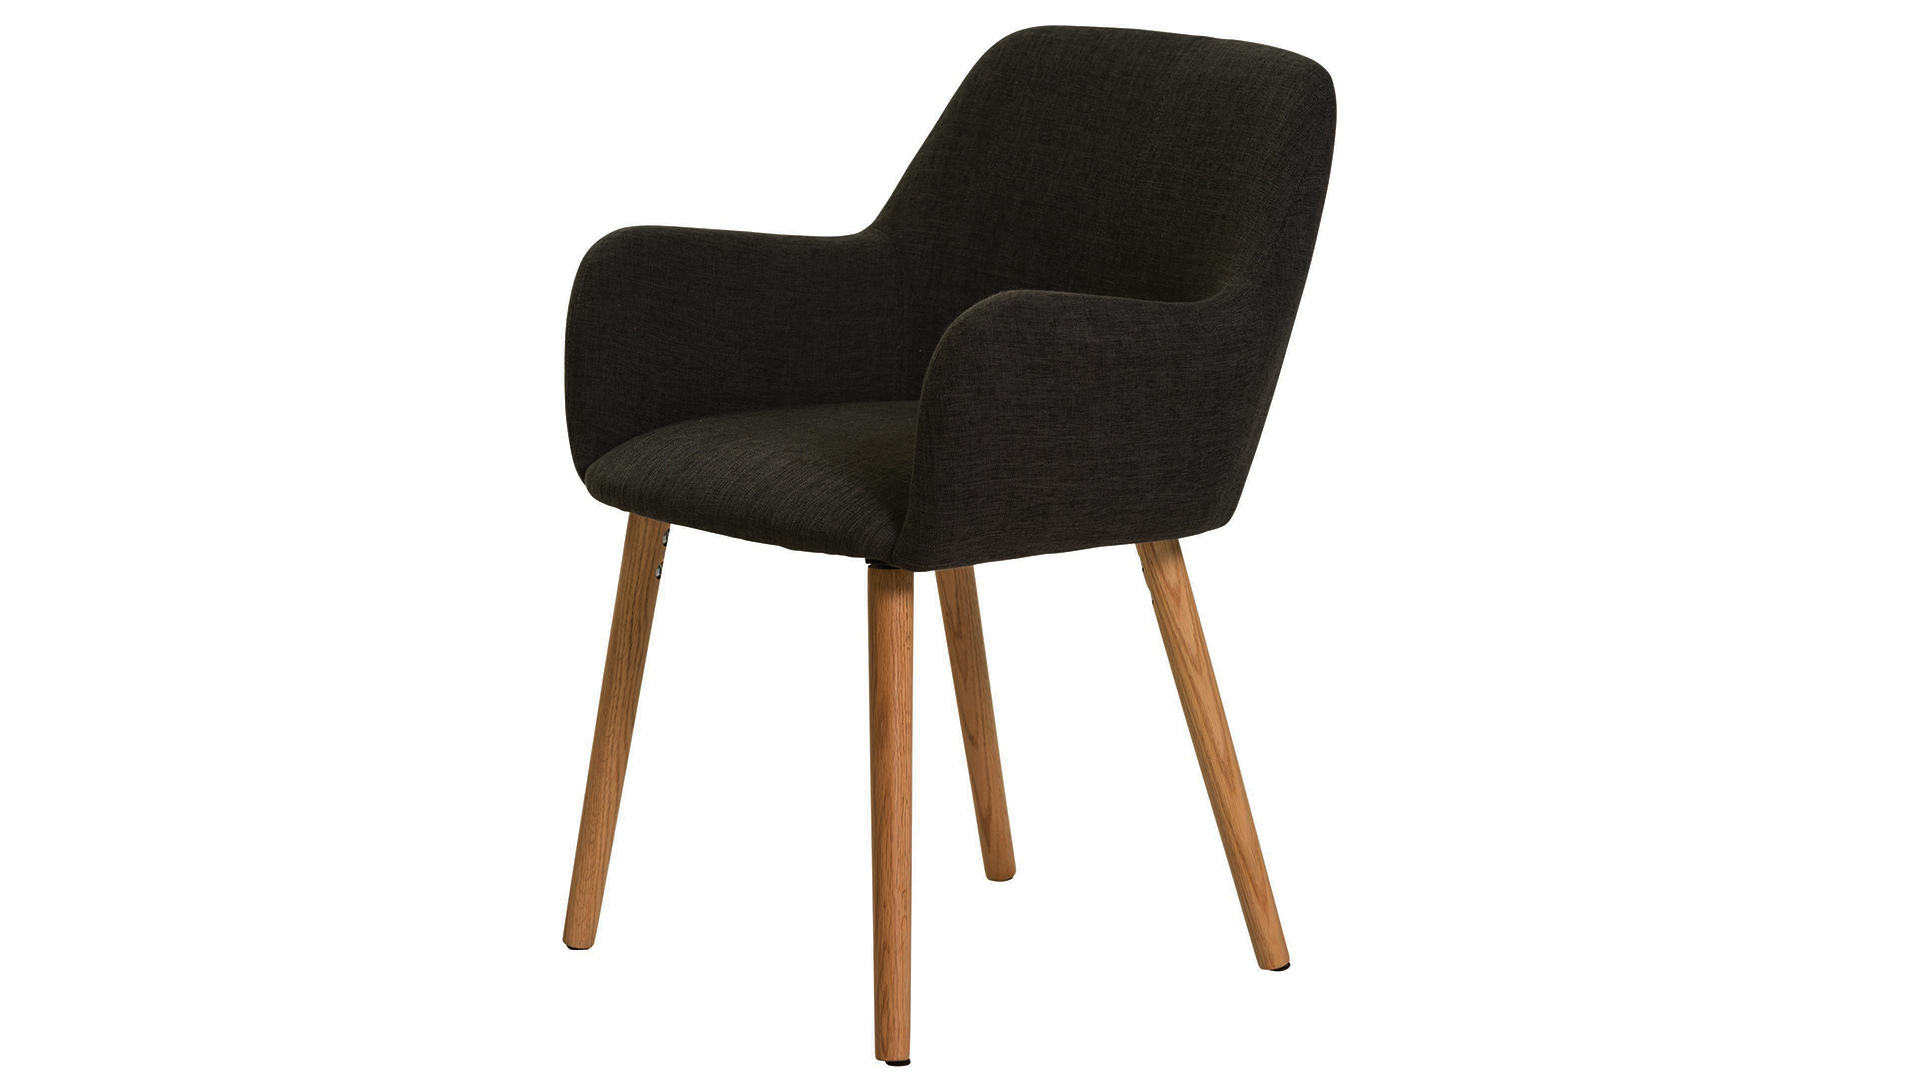 bedroom st cream designer james scoop accent chairs chair for cheap cheapest